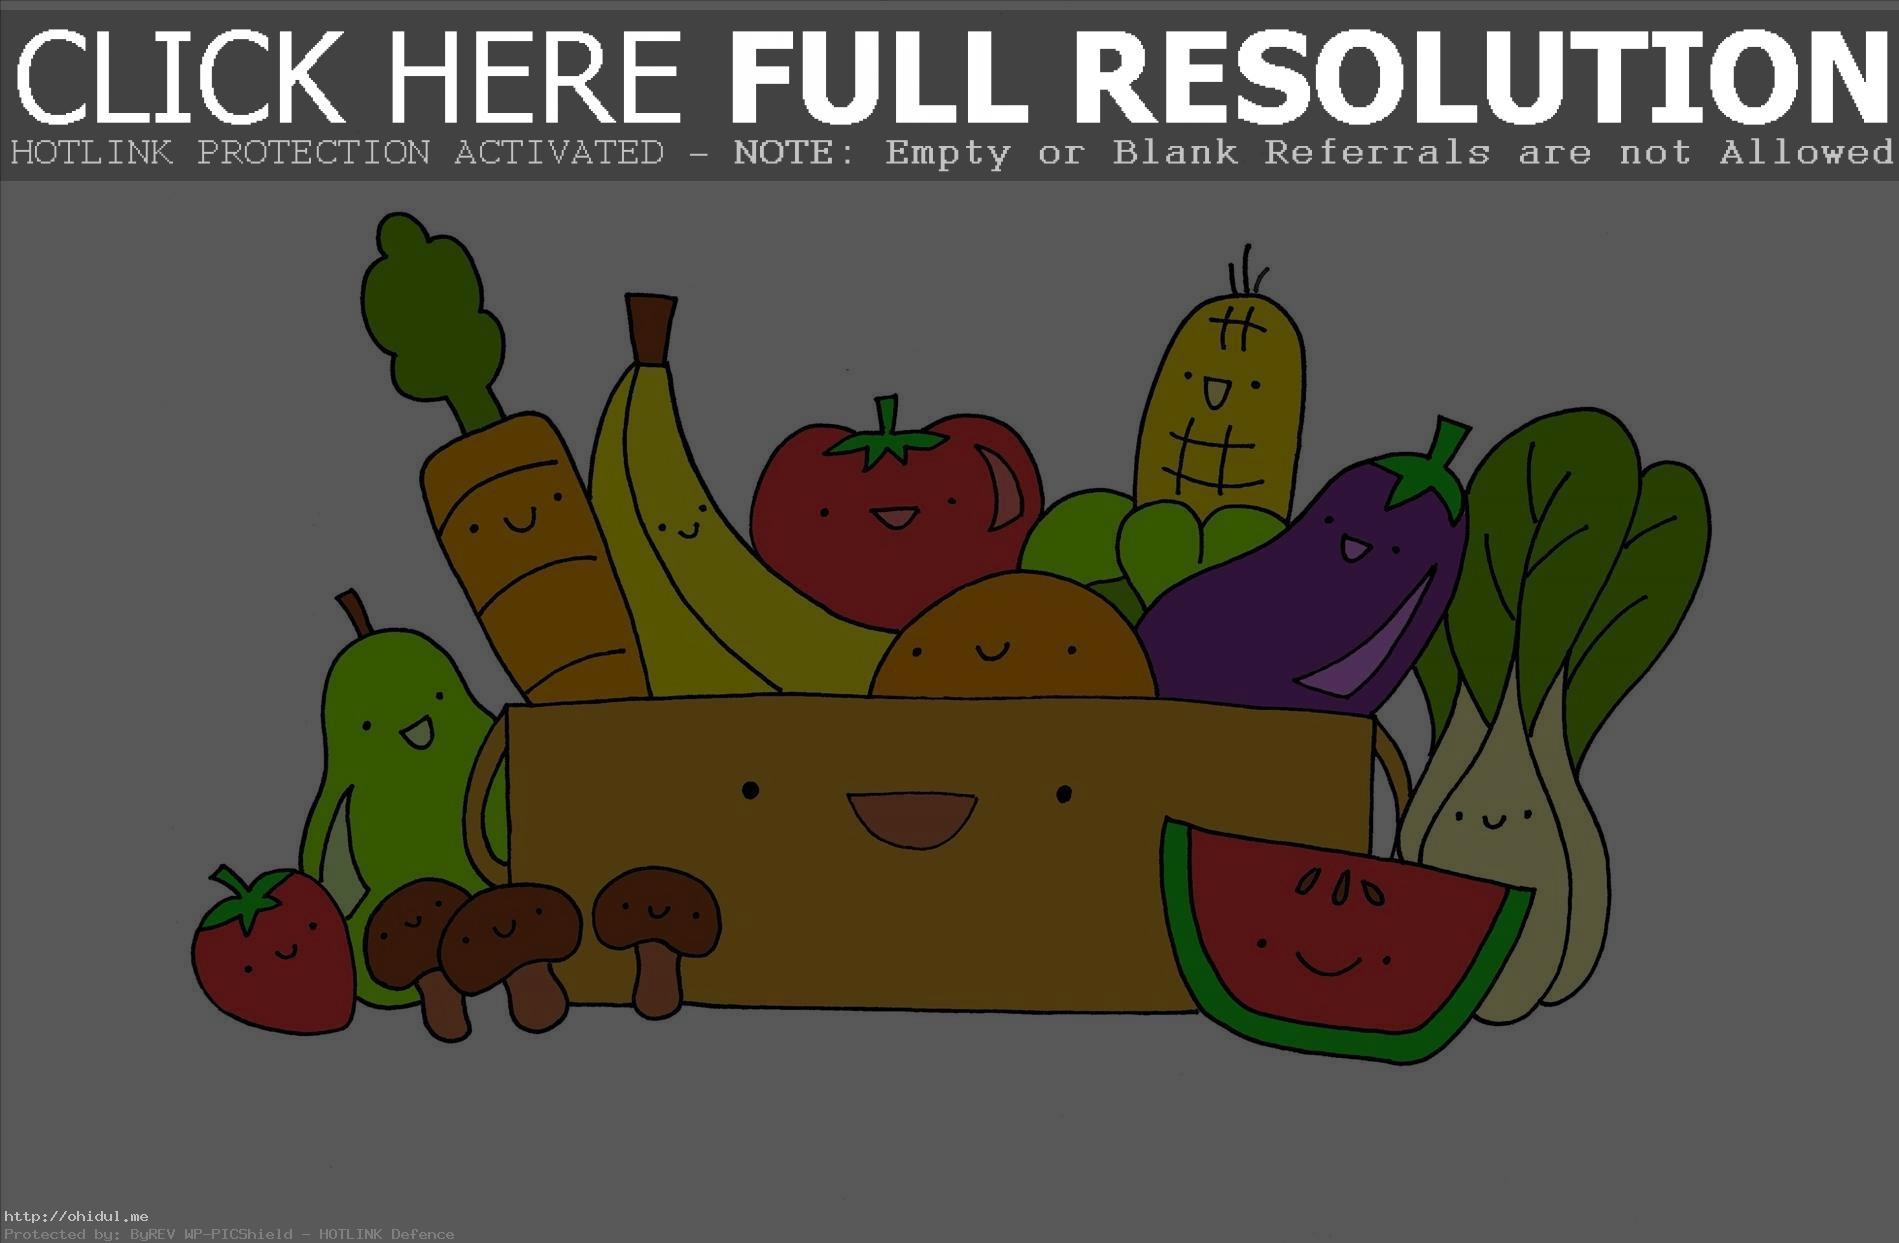 . hdclipartall.com Funny Healthy Food Clipart Png Nutrition Cliparts Free Eating Food Clipart Clip hdclipartall.com